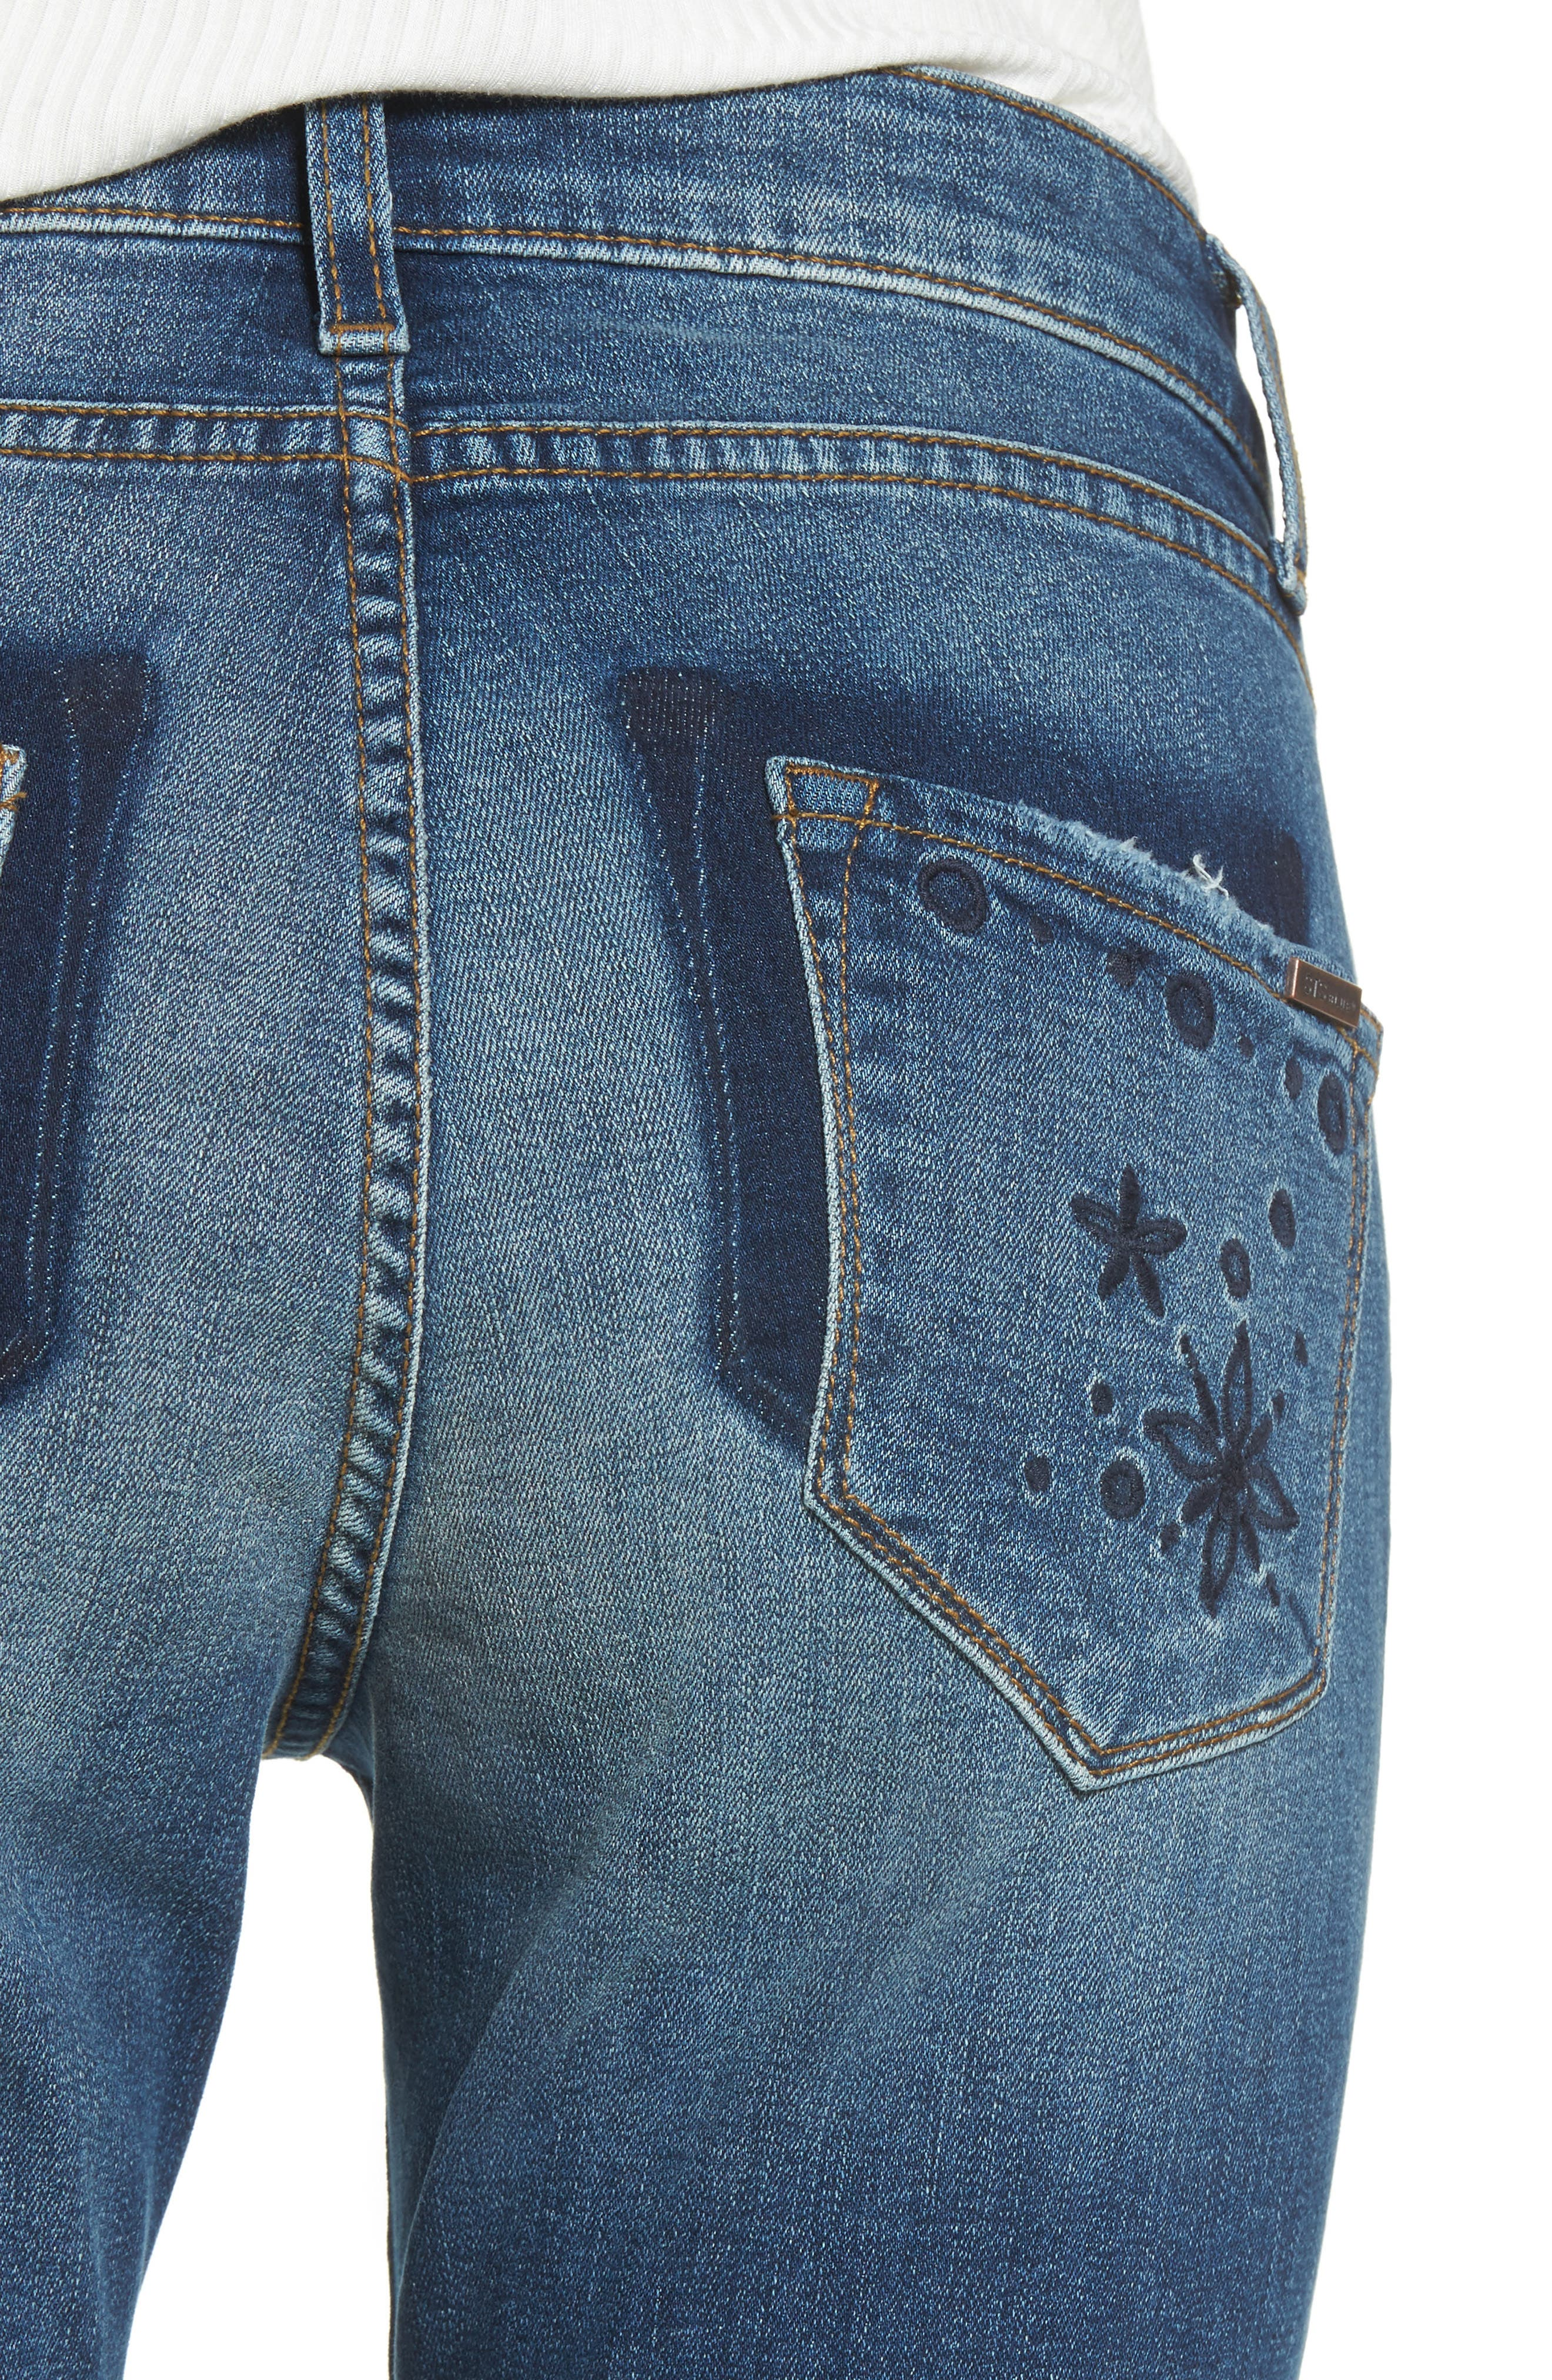 Taylor Distressed and Embroidered Straight Leg Jeans,                             Alternate thumbnail 4, color,                             Rosedale